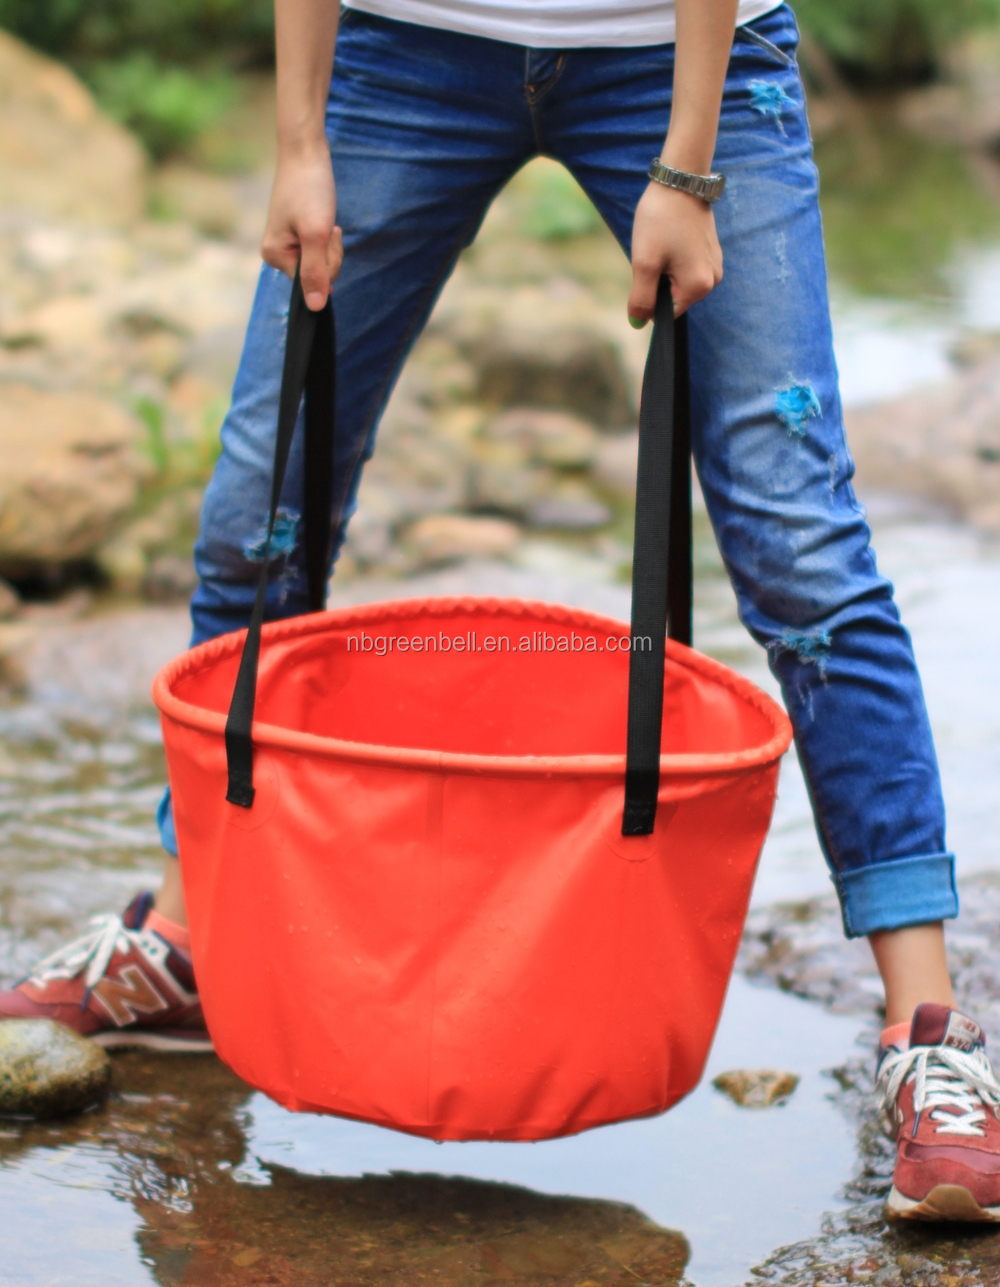 portable and durable PVC water barrel for fishing